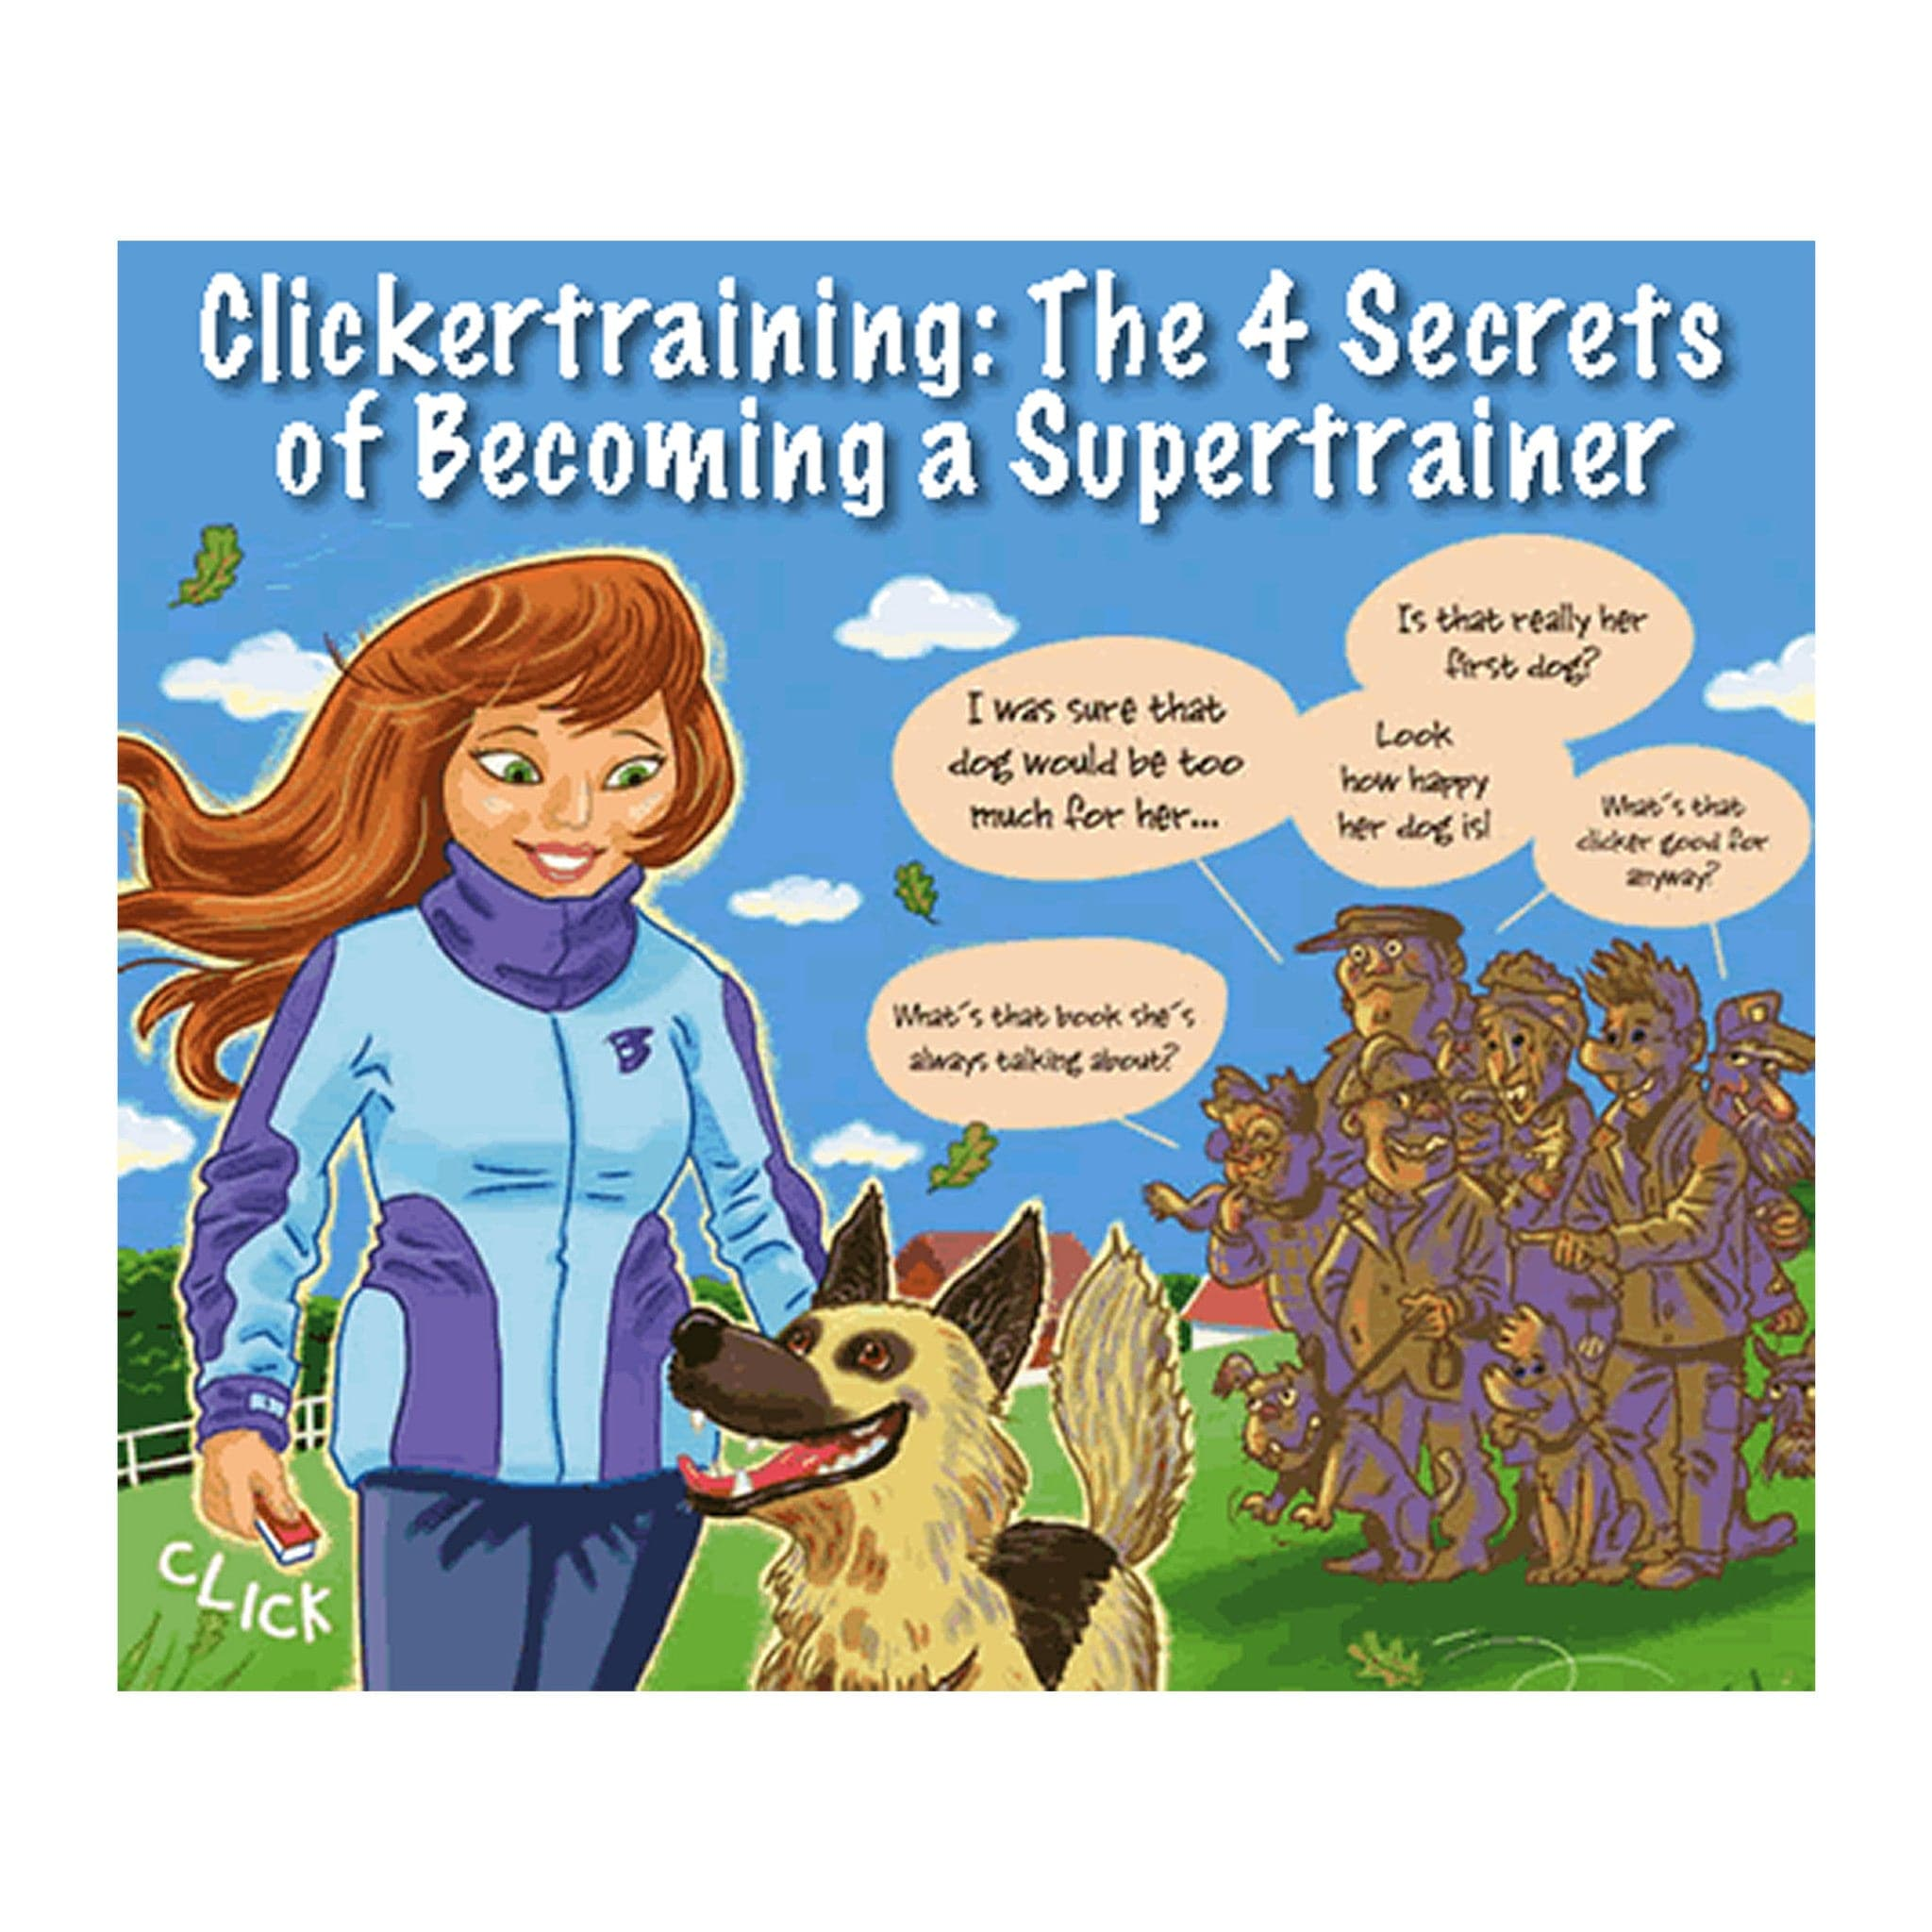 Clickertraining: The 4 Secrets of Becoming a Supertrainer - PDF eBook